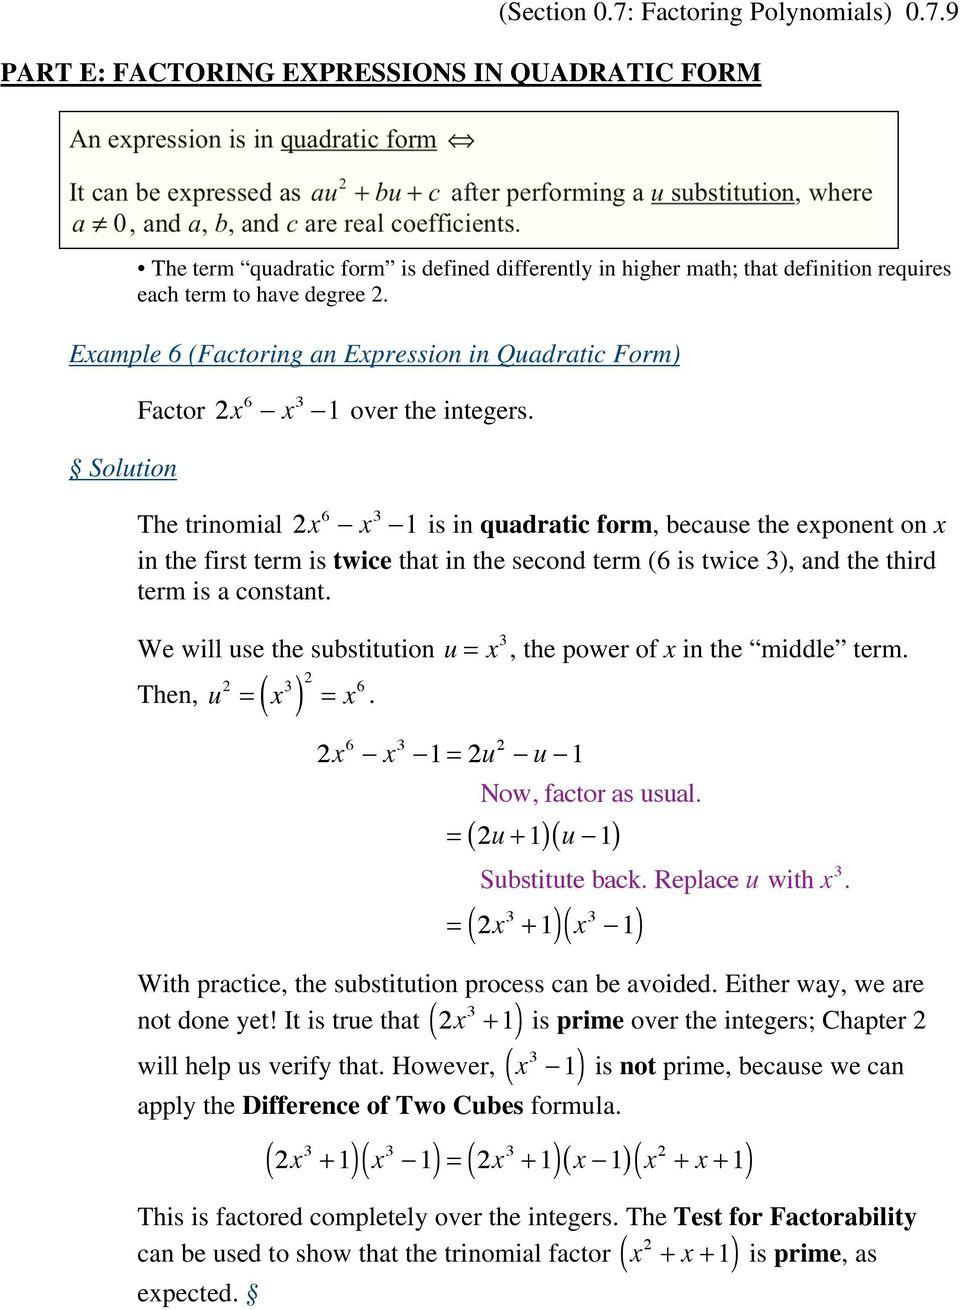 9 PART E: FACTORING EXPRESSIONS IN QUADRATIC FORM An expression is in quadratic form It can be expressed as au 2 + bu + c after performing a u substitution, where a 0, and a, b, and c are real